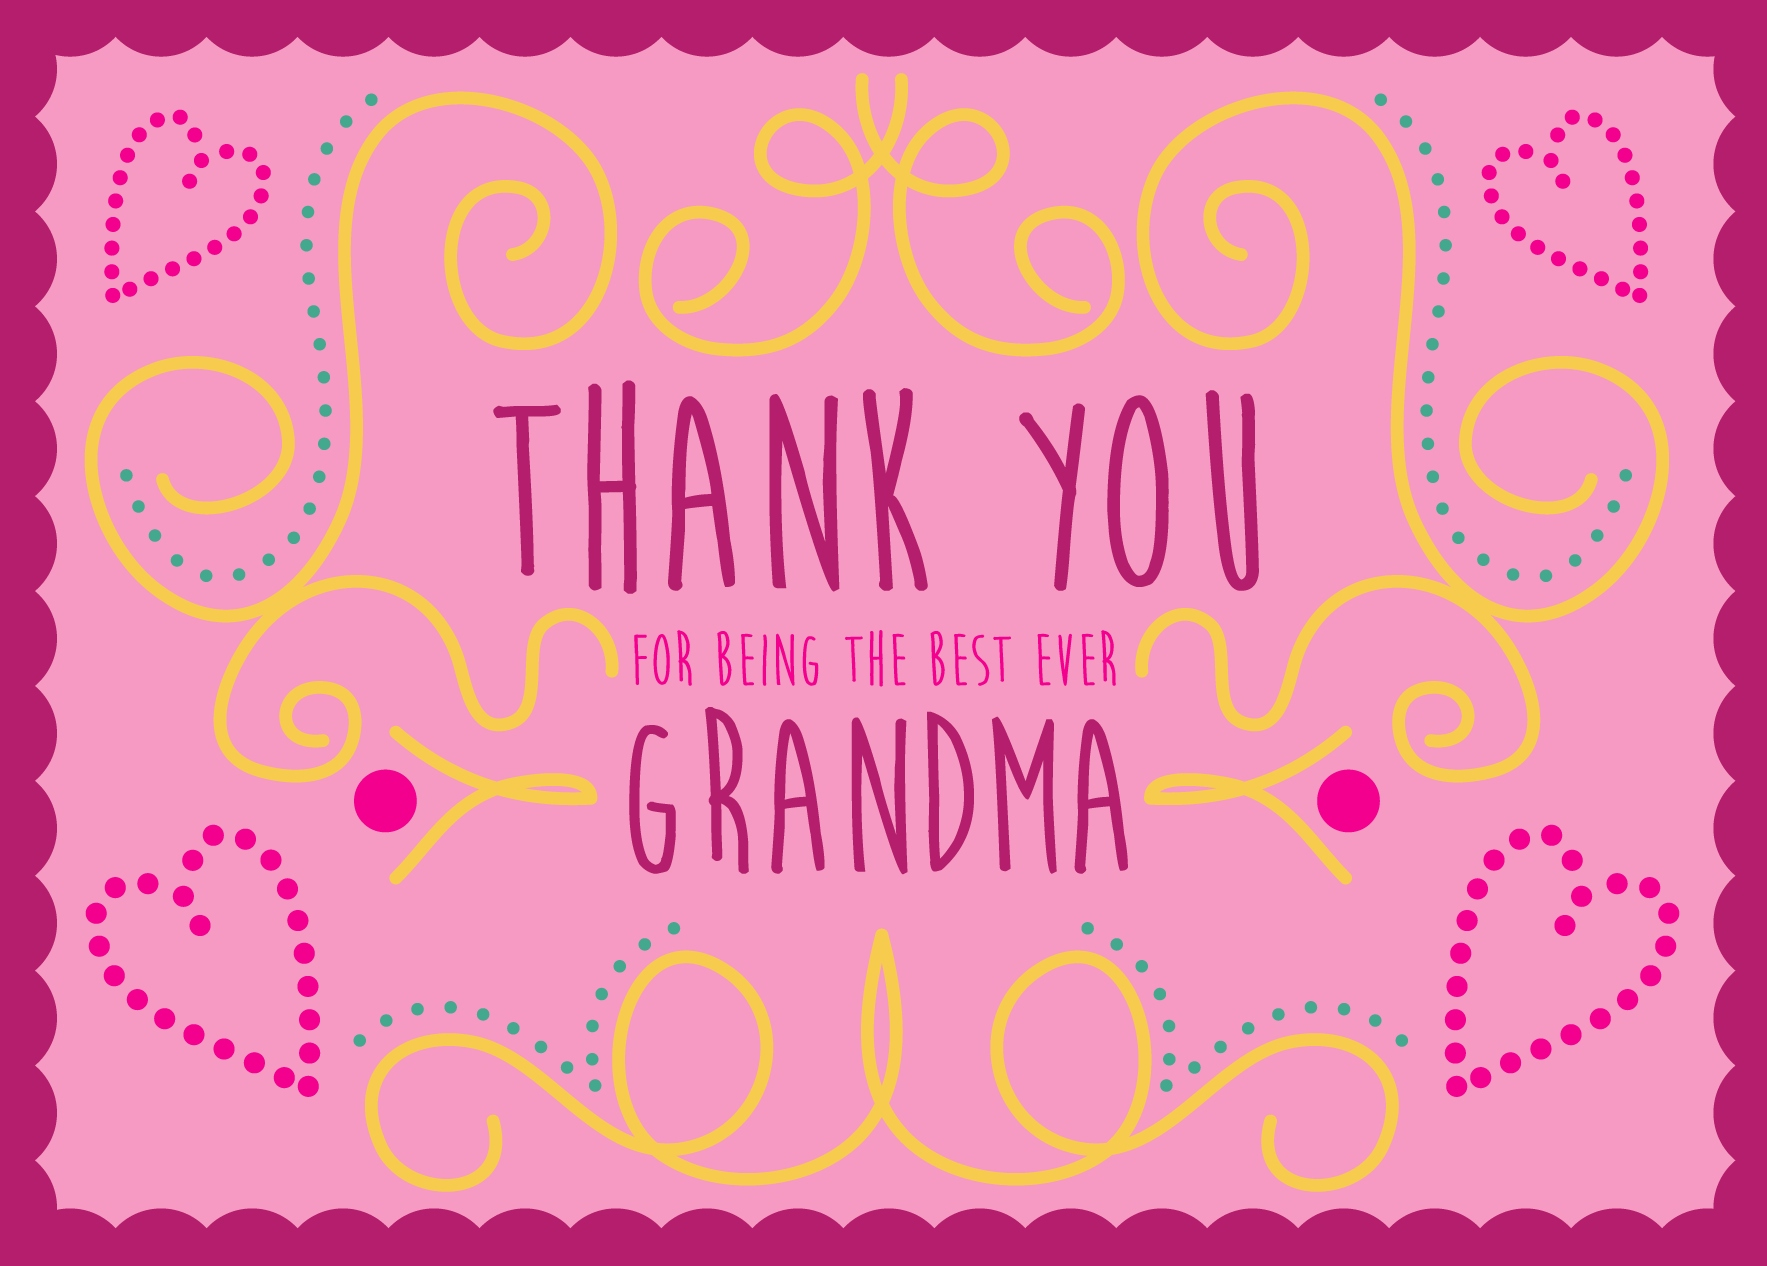 grandma birthday card sayings ; what-to-say-in-a-birthday-card-for-grandma-best-of-grandma-birthday-card-sayings-gallery-birthday-cards-design-of-what-to-say-in-a-birthday-card-for-grandma